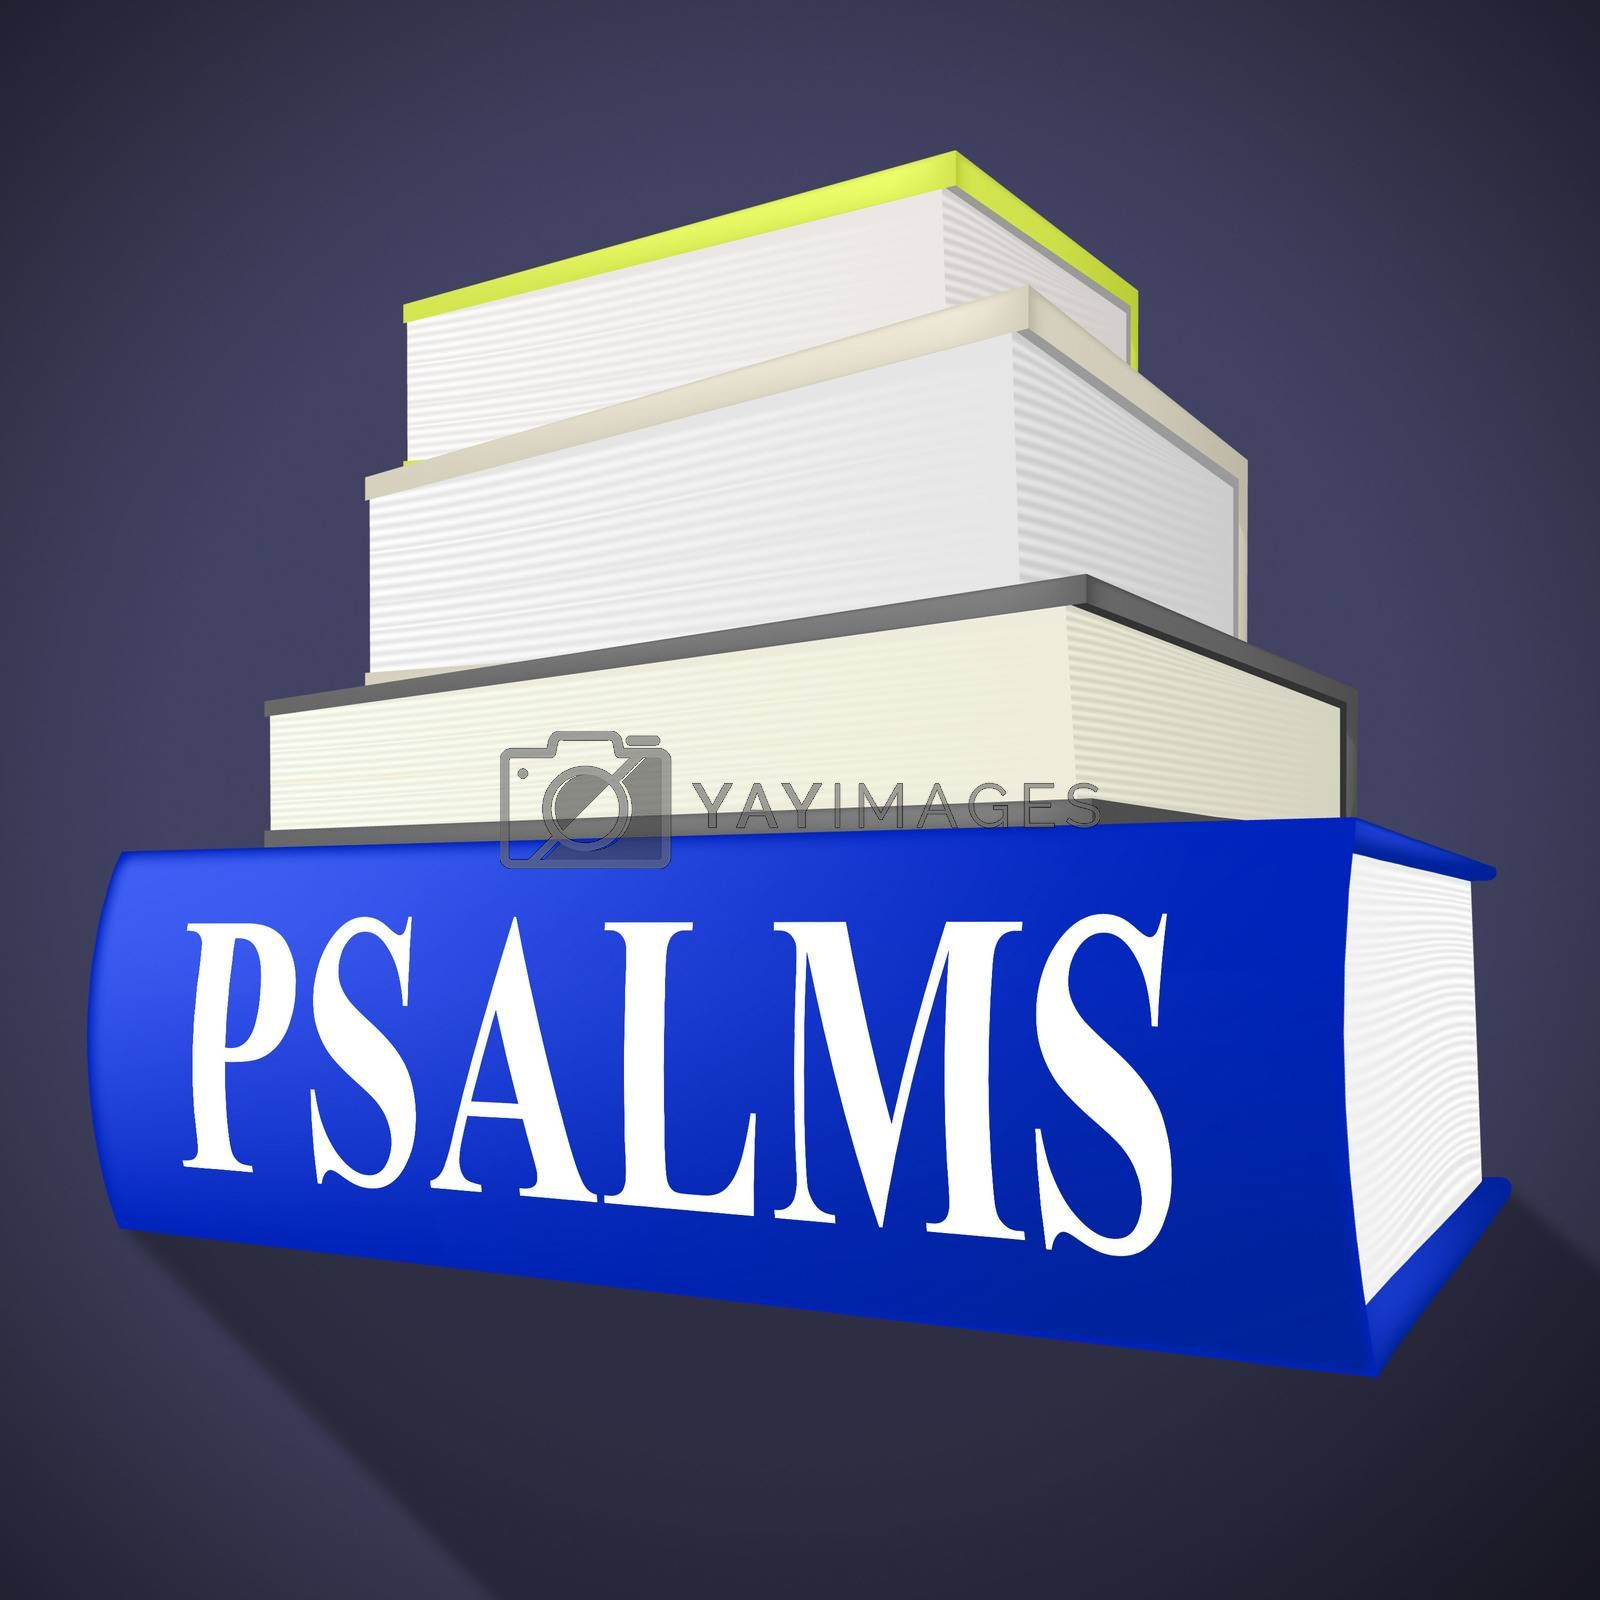 Psalms Books Means Song Of Praise And Anthem by stuartmiles